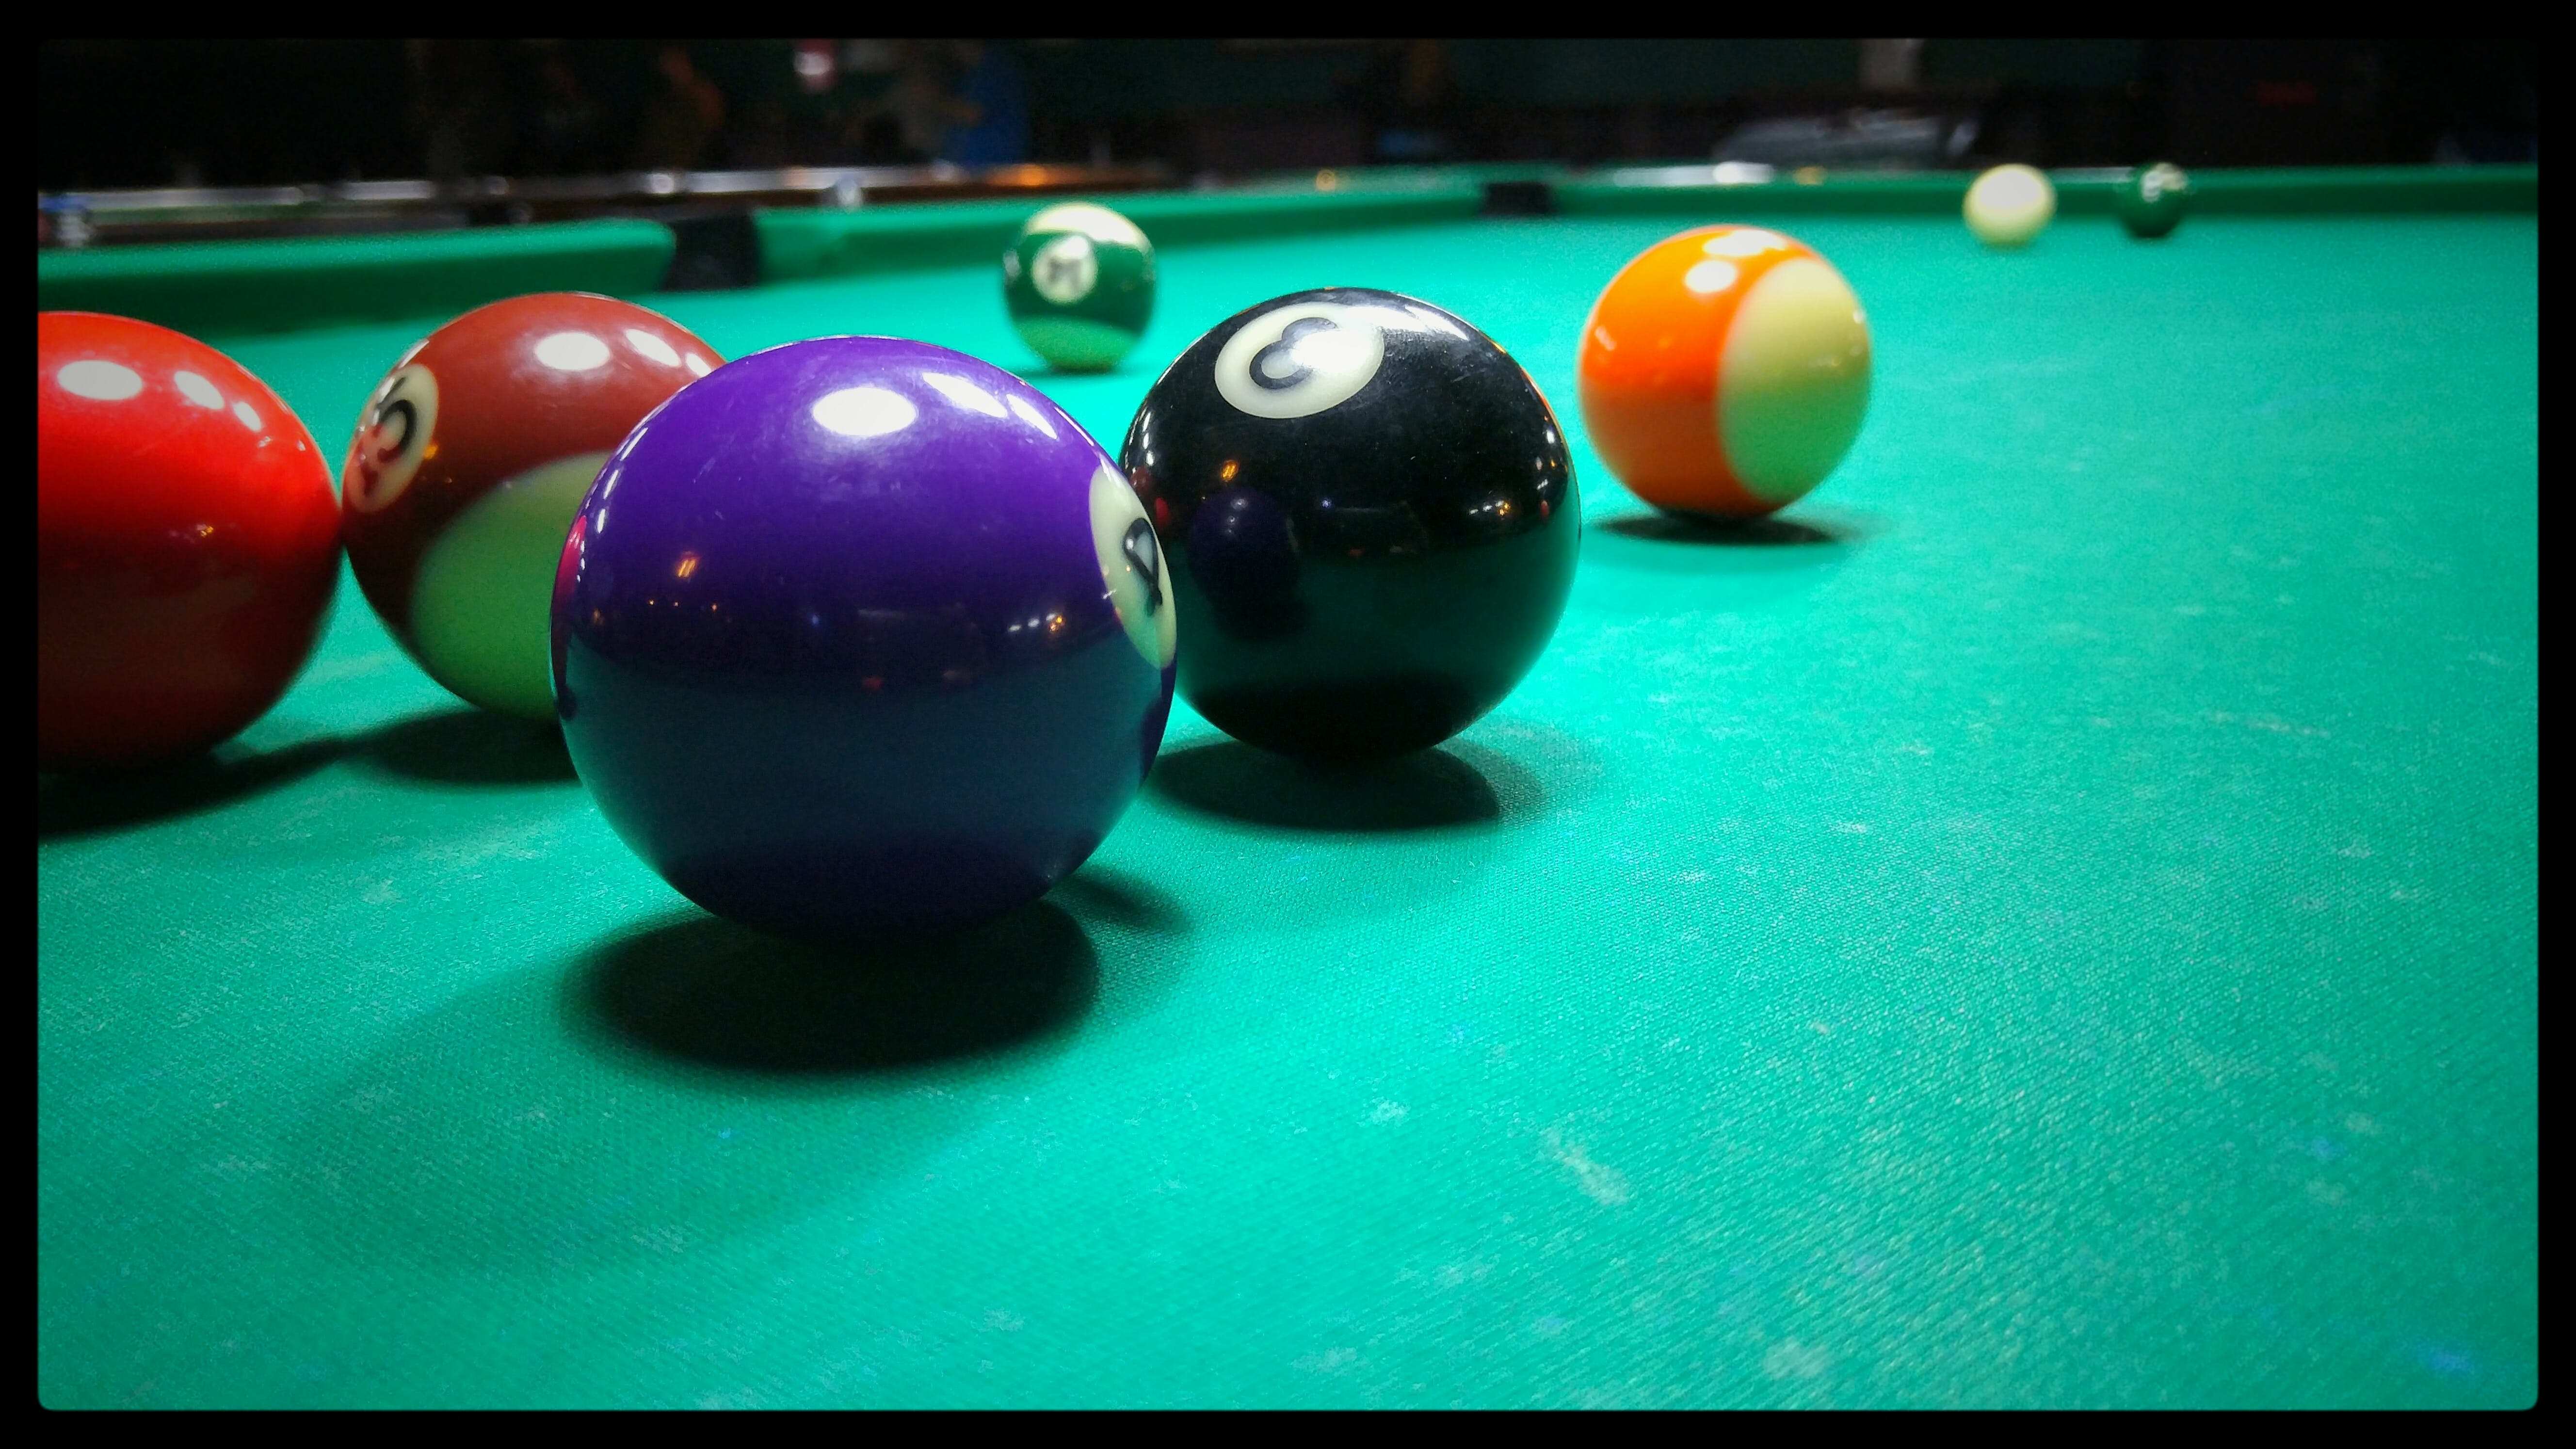 Free stock photo of 4, billiards, green, pool